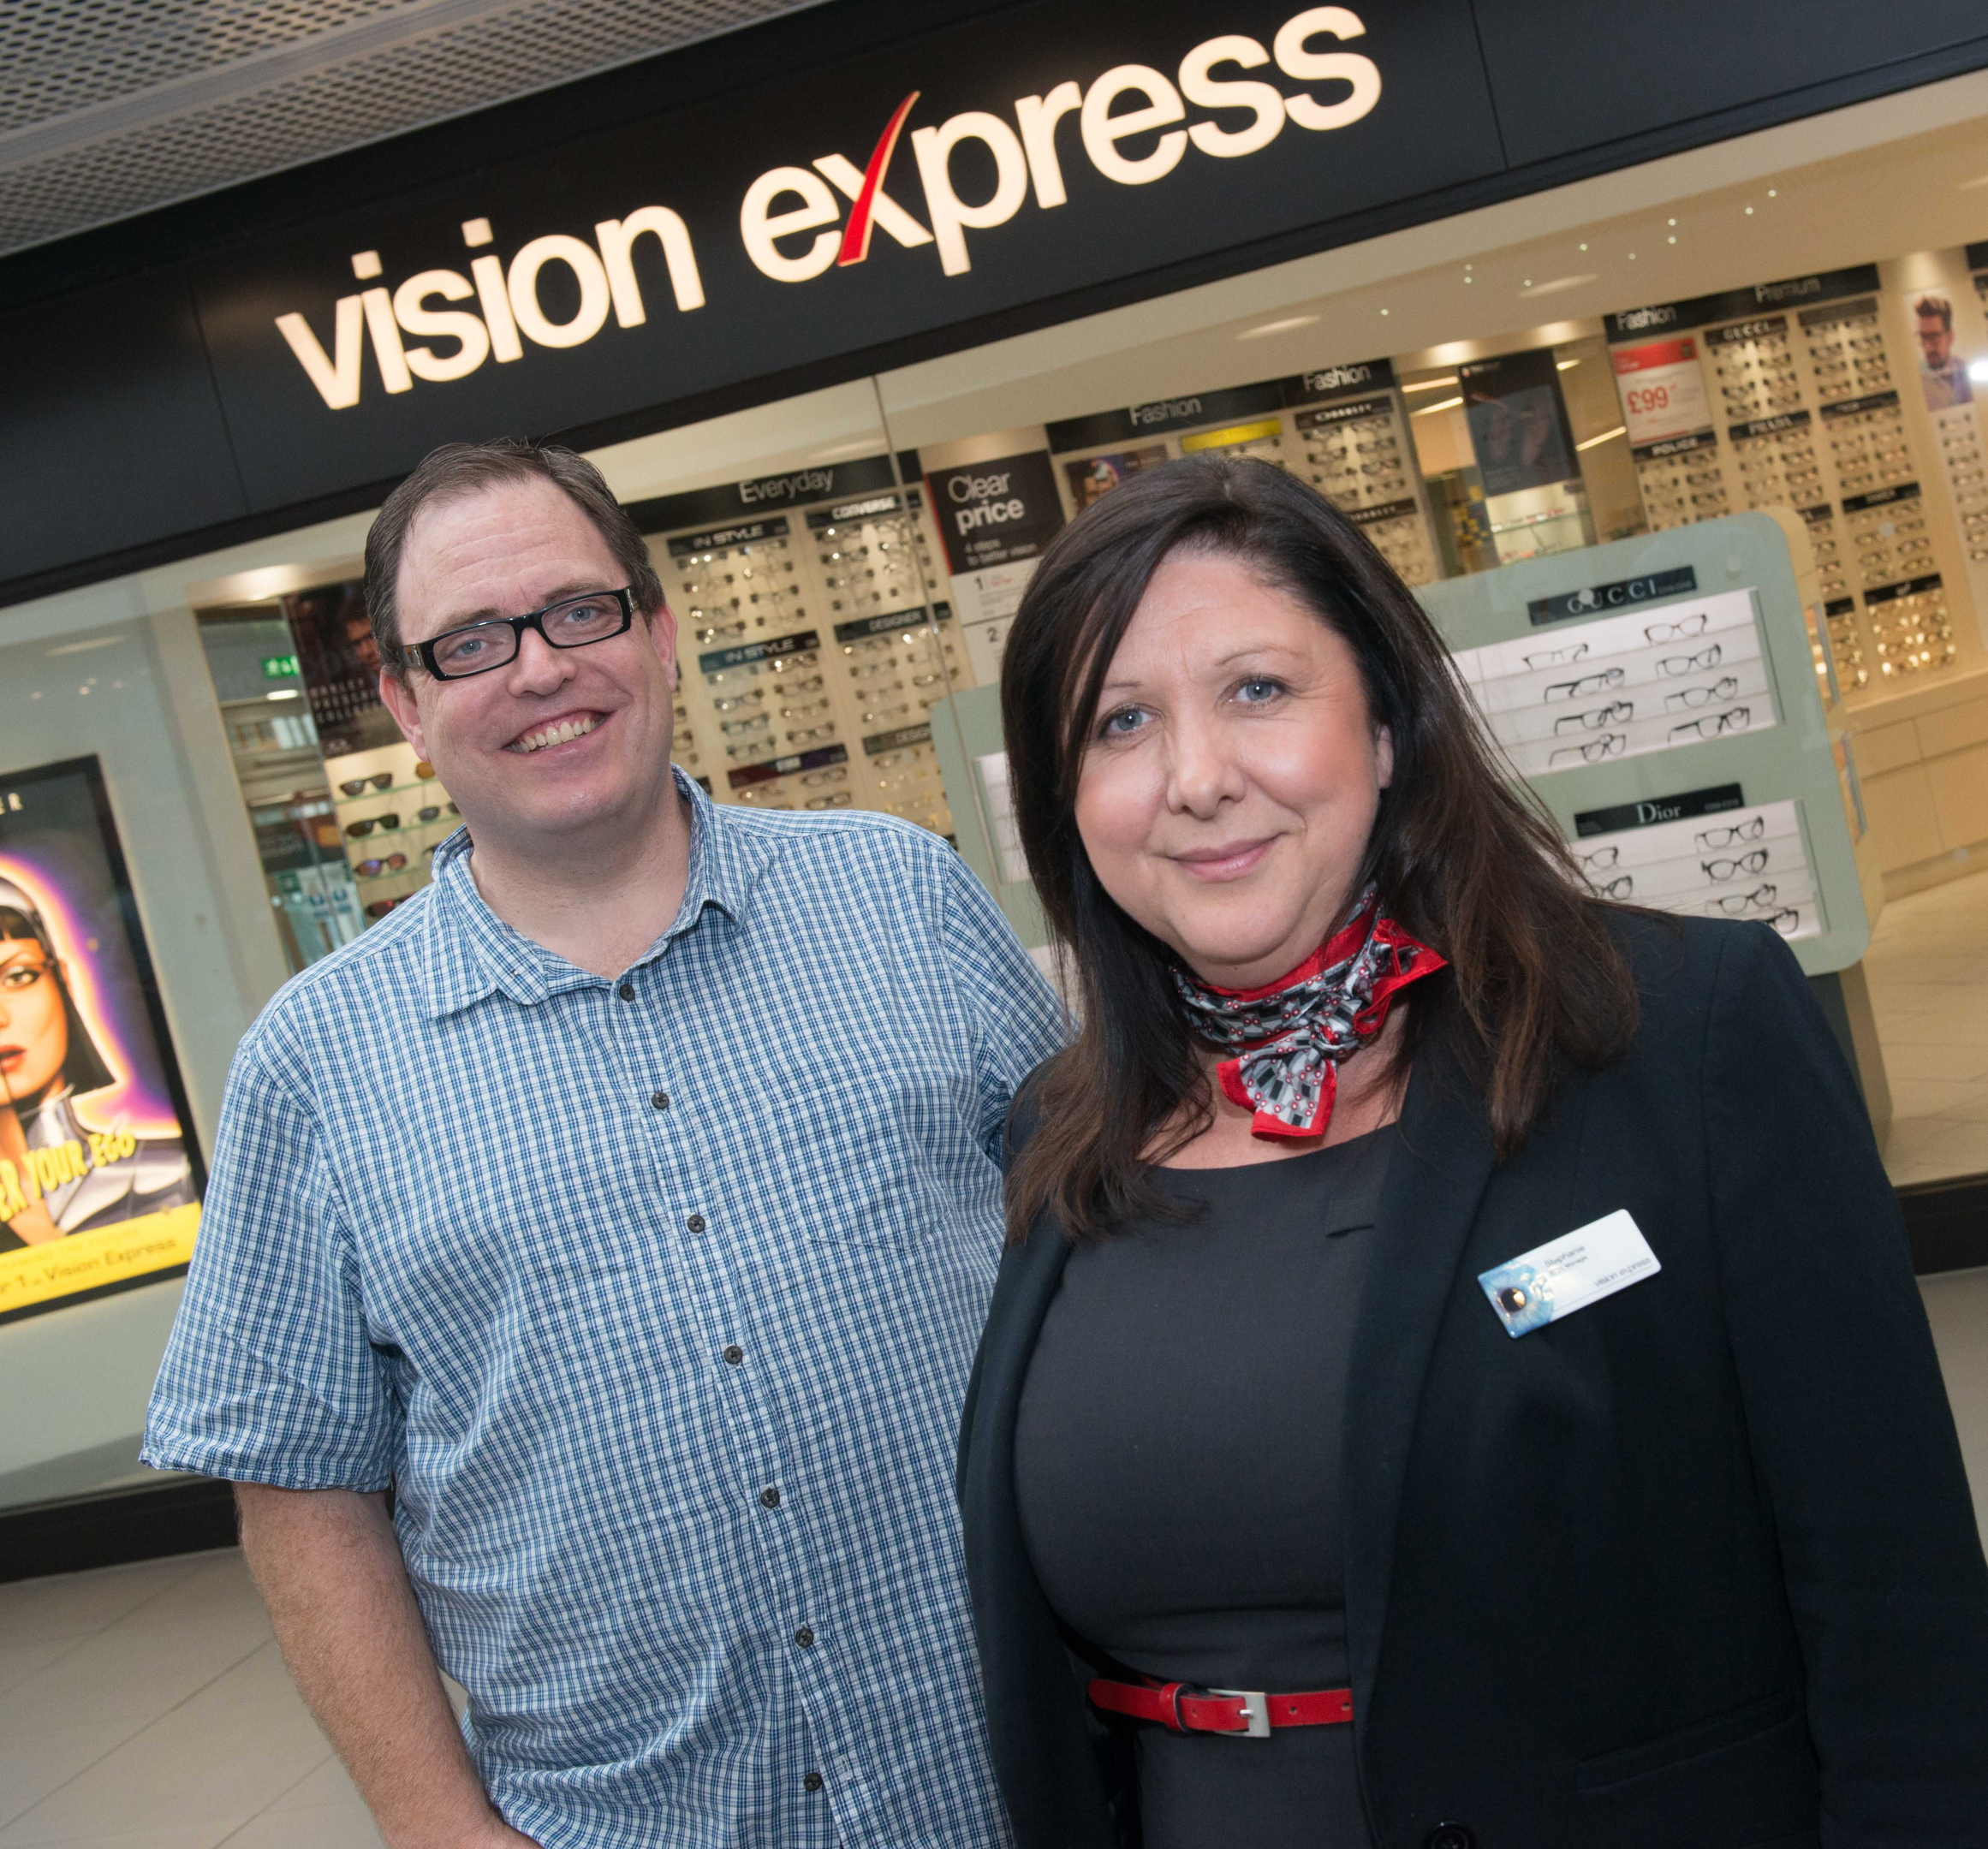 Alun Williams is backing the campaign to have vision checks after he overcame sight problems.